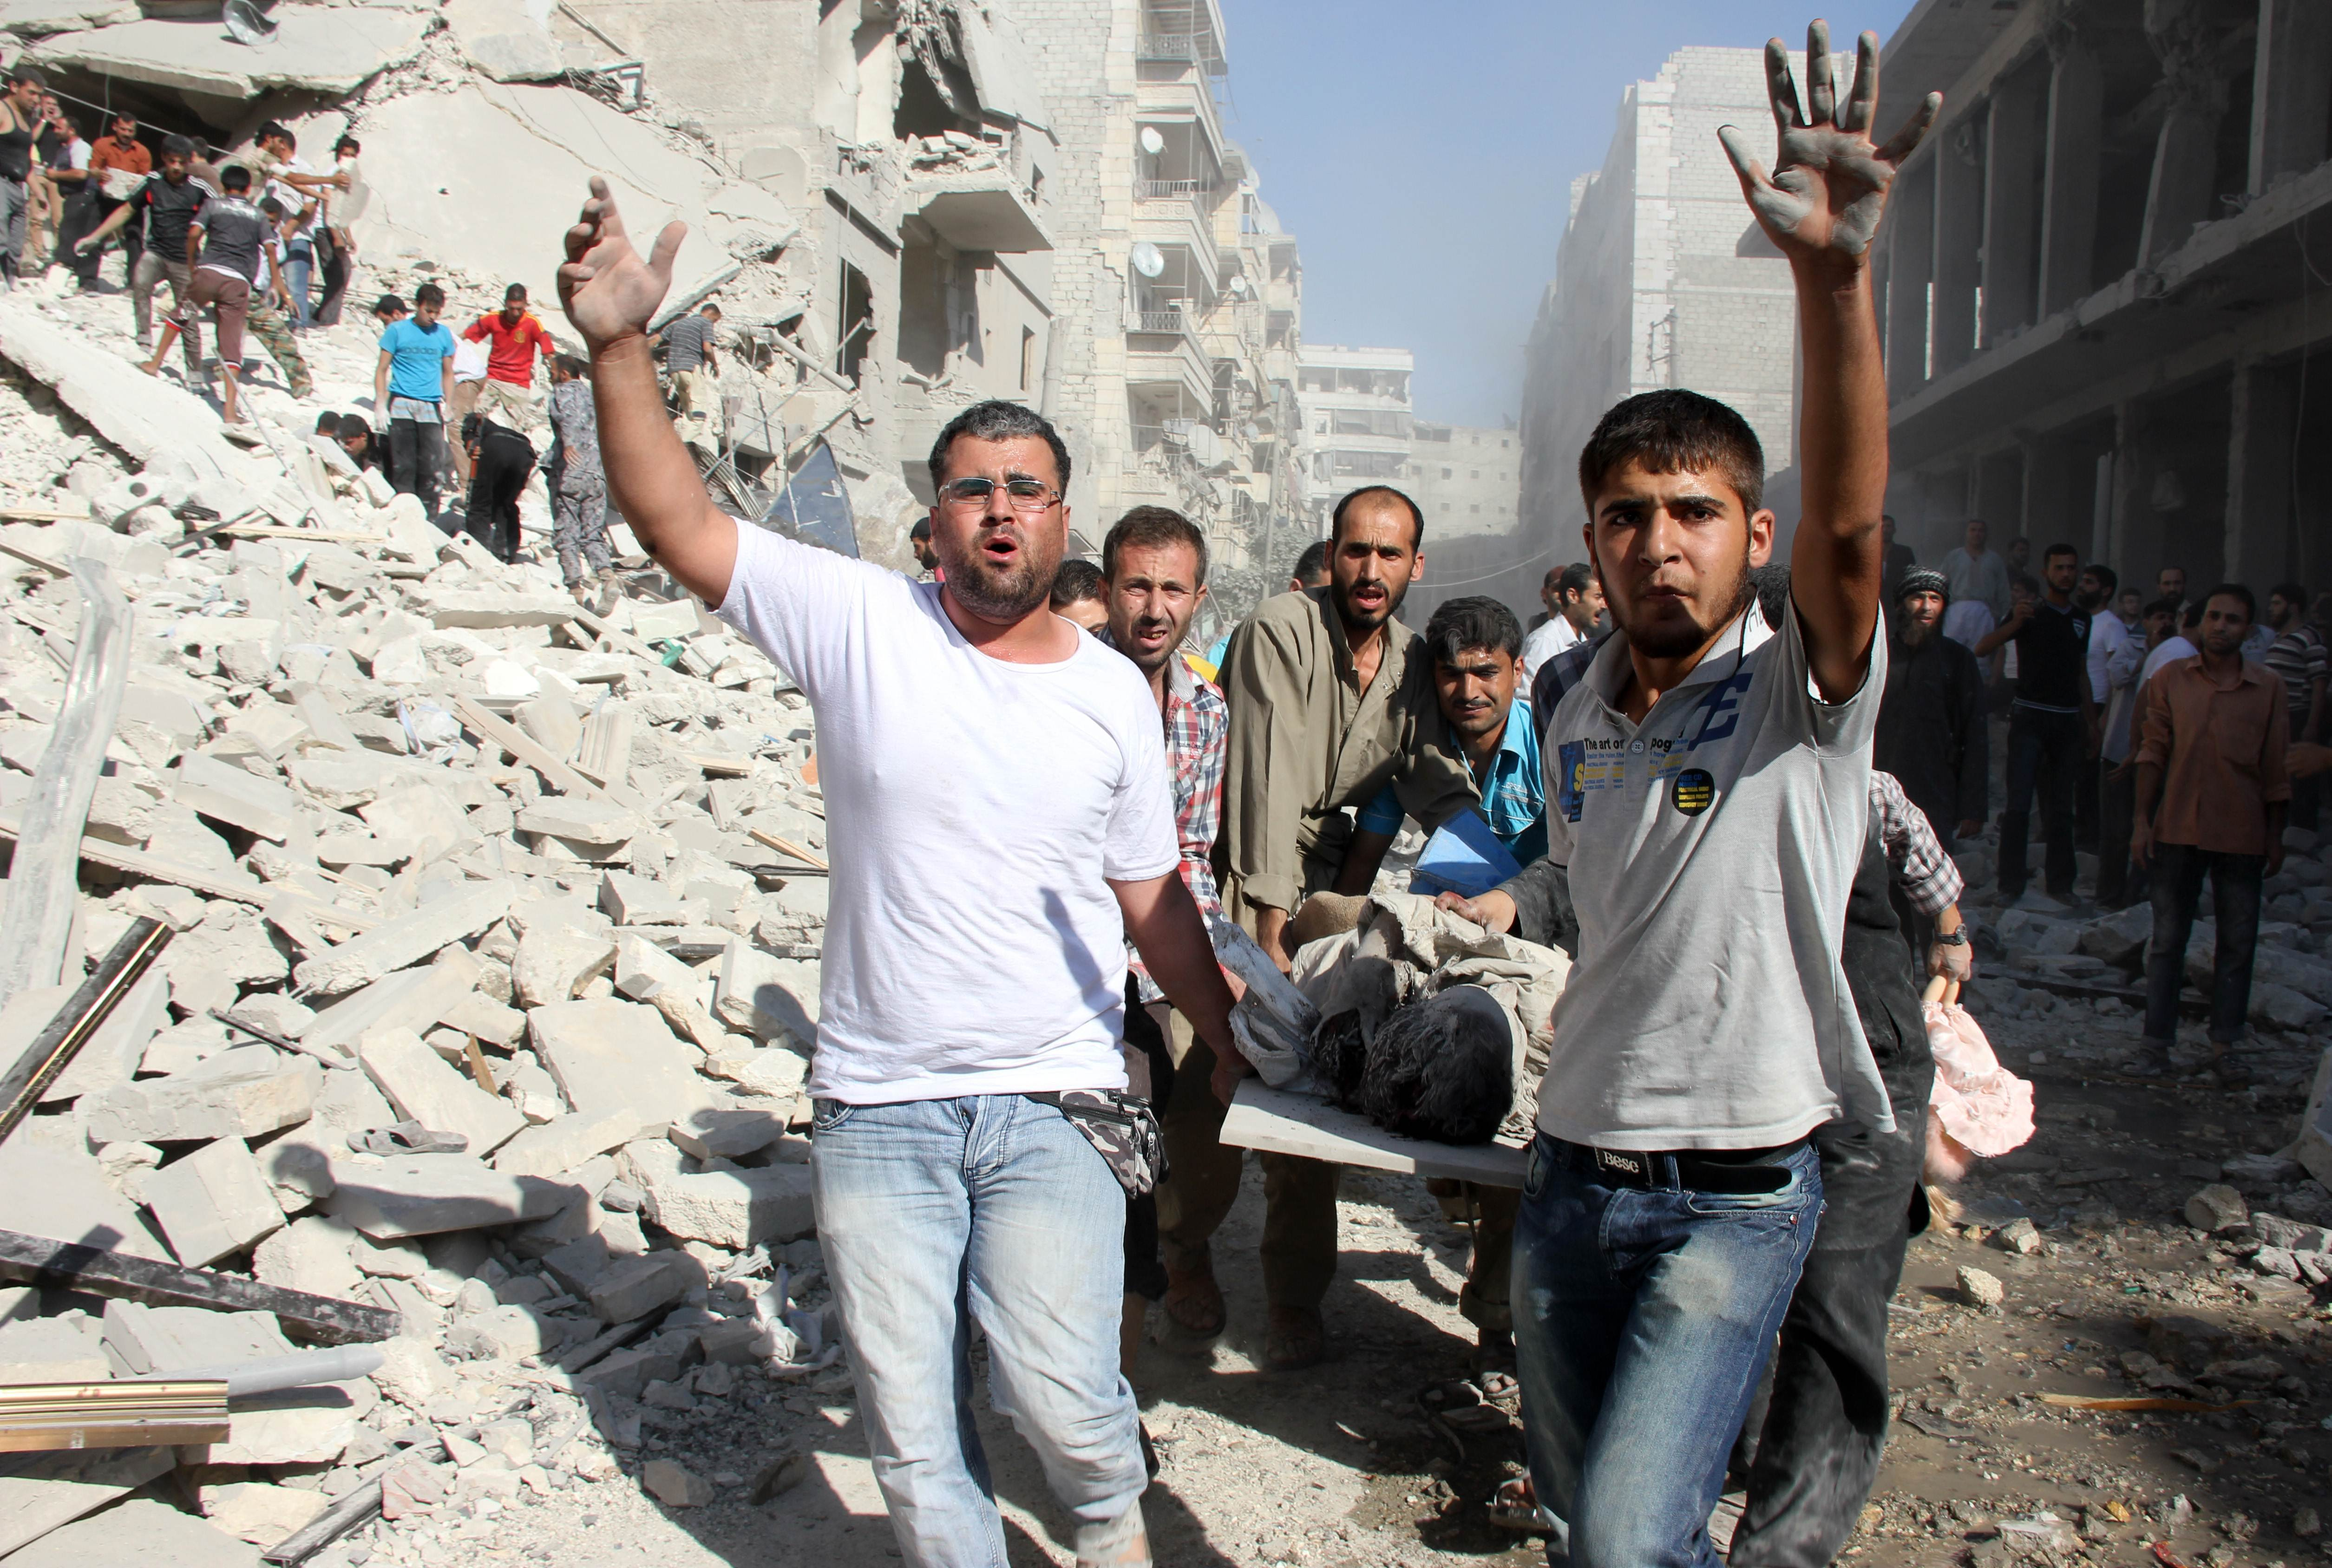 Rubble and ruin: Syrians evacuate a victim following an air strike by forces loyal to Syrian President Bashar Assad in Aleppo on Monday. | AFP-JIJI